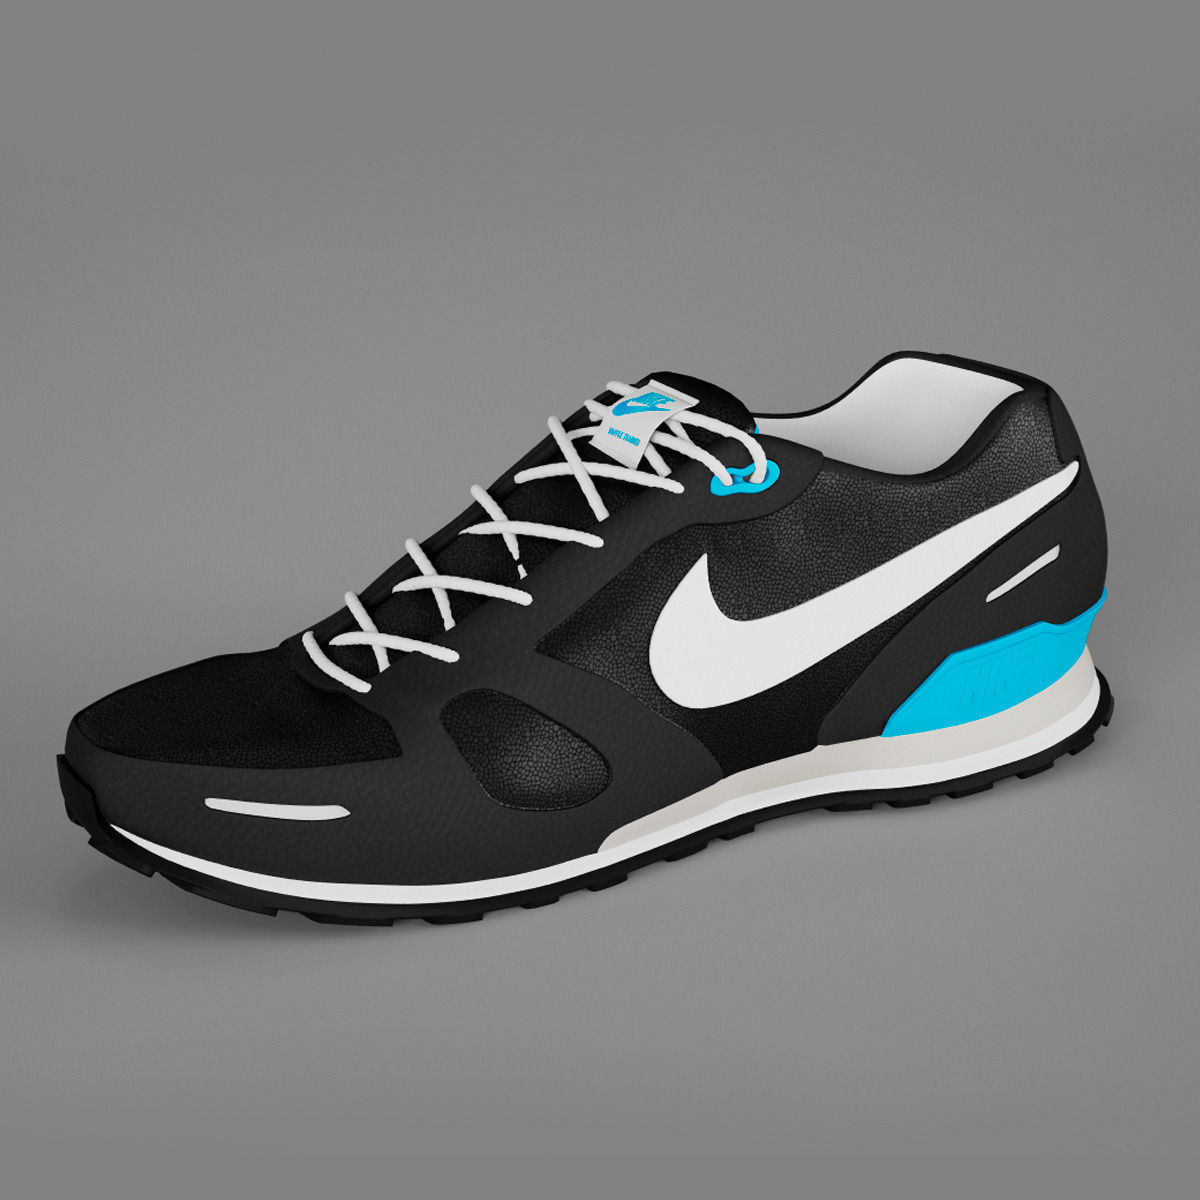 ... shoes nike waffle trainer 3d model max obj fbx mtl 6 ...